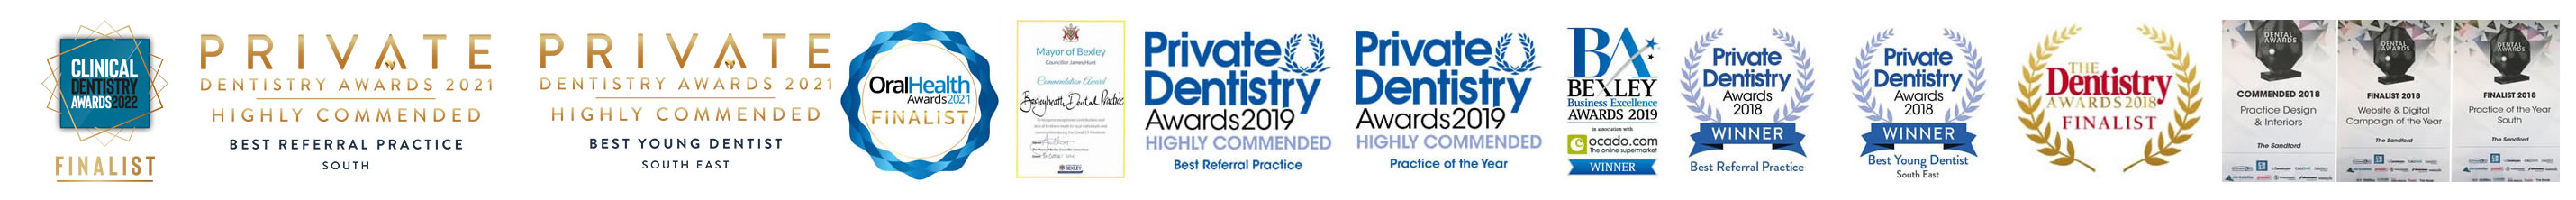 The Sandford Bexleyheath finalist in Dental Awards